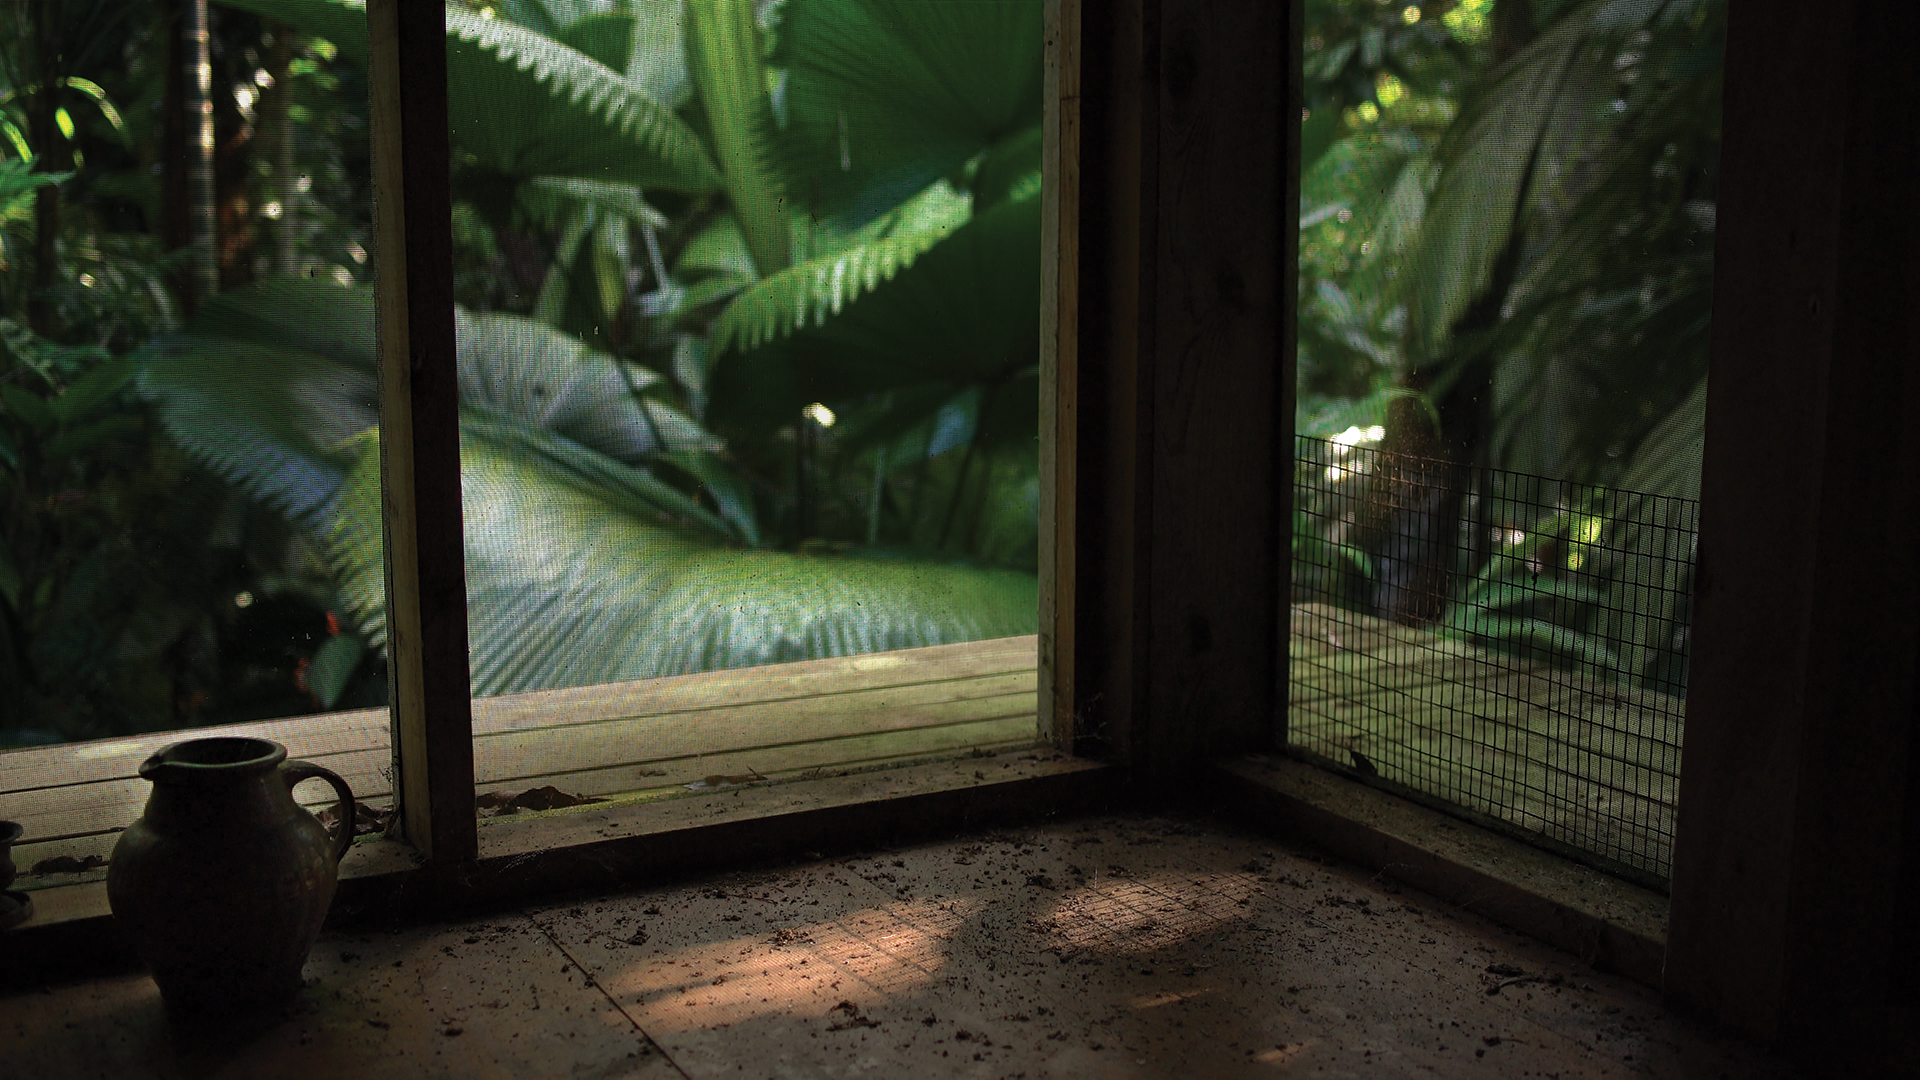 The Sitting Room: Sit in W.S. Merwin's meditation dojo, deep in the palm forest